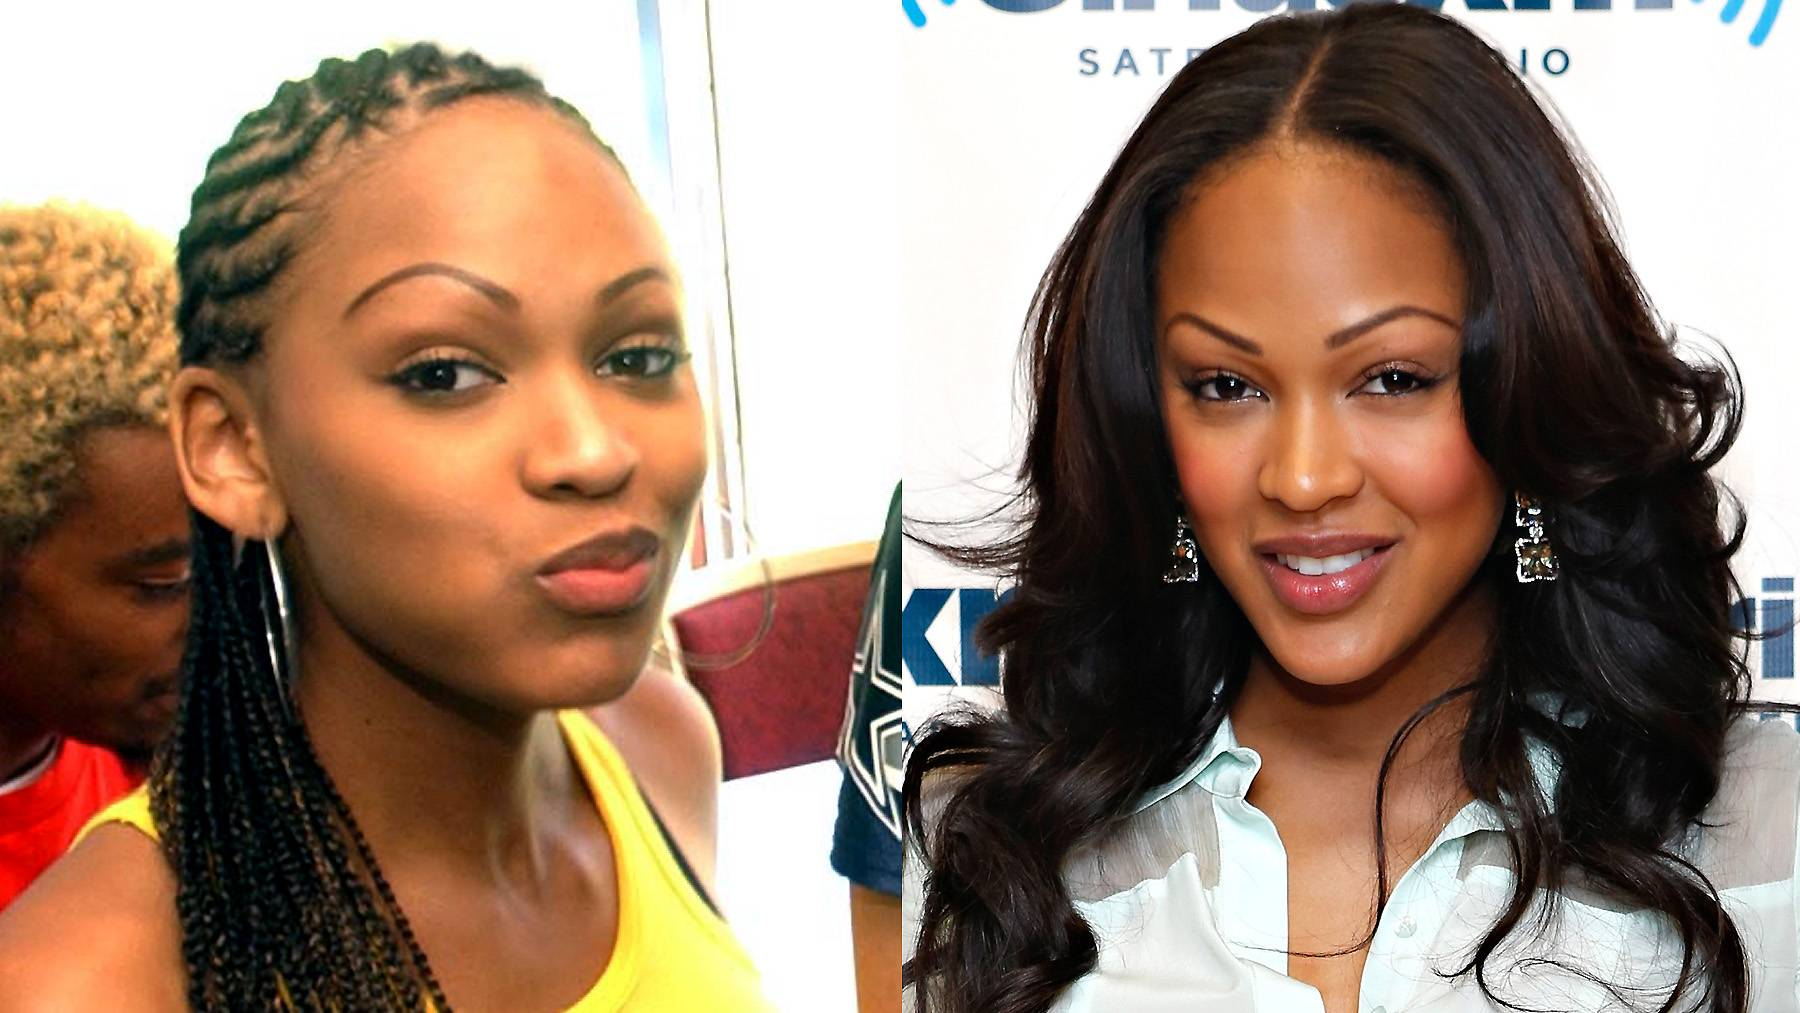 Meagan Good - After her Cousin Skeeter days, the Deception actress transitioned from long stringy hair, jeans and sporty tops to feminine outfits and sweet layers.  (Photos from left: mk/bg/Bill Greenblatt/UPI /Landov, Cindy Ord/Getty Images)